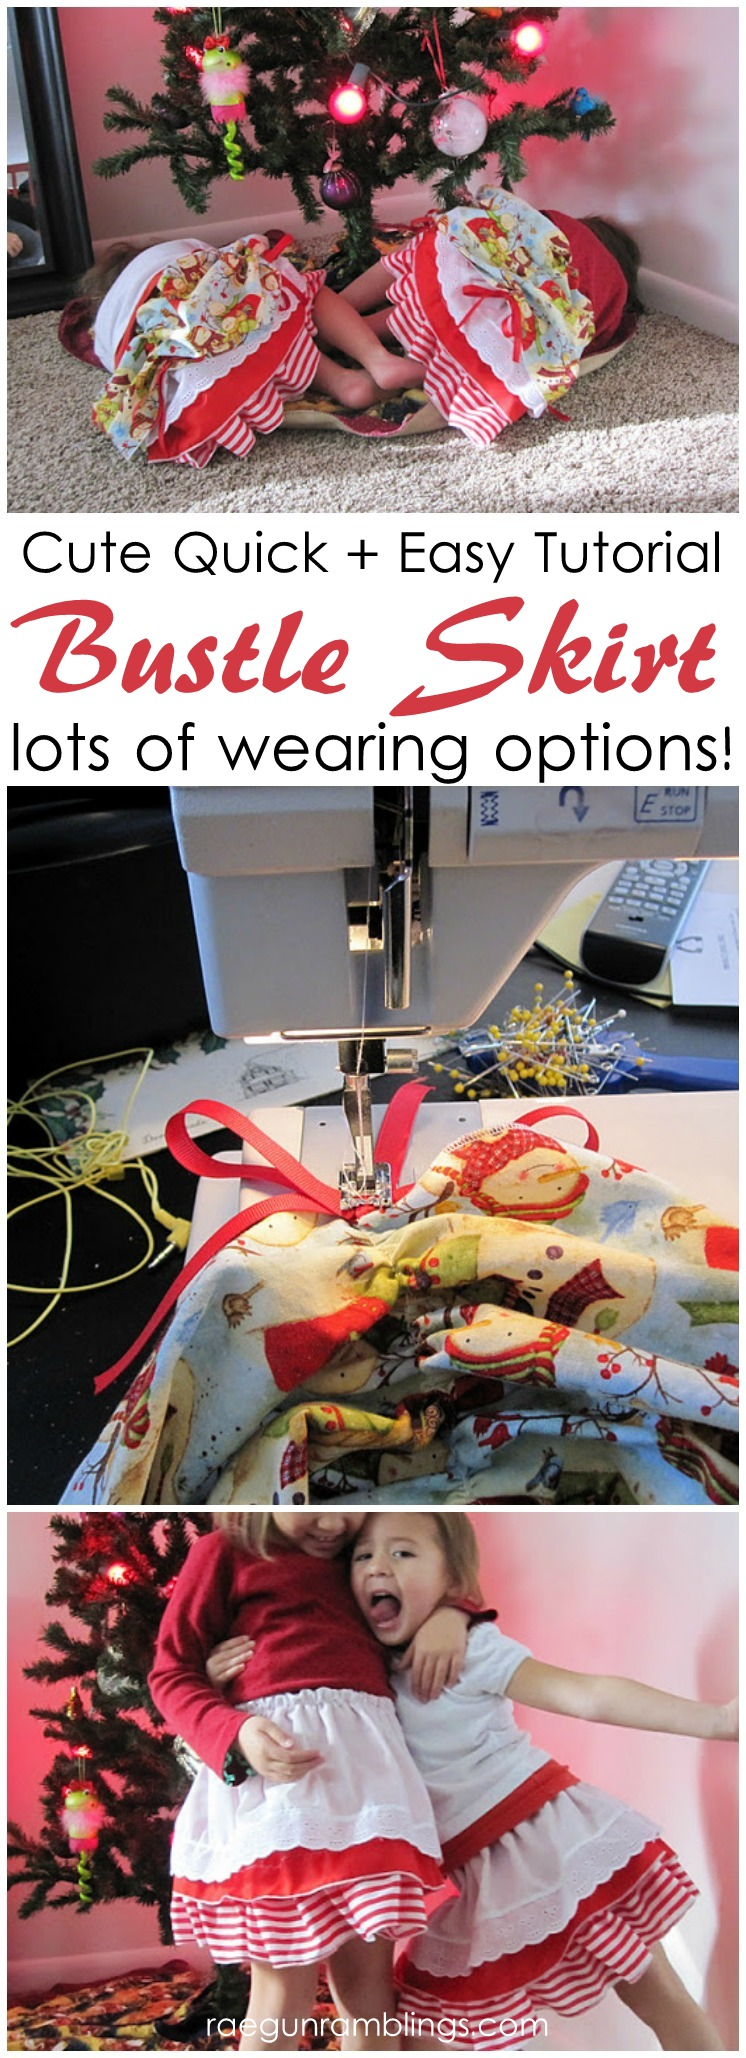 Too cute. Easy sewing tutorial for bustle skirts. The layers makes for lots of wearing options. Great DIY tutorial